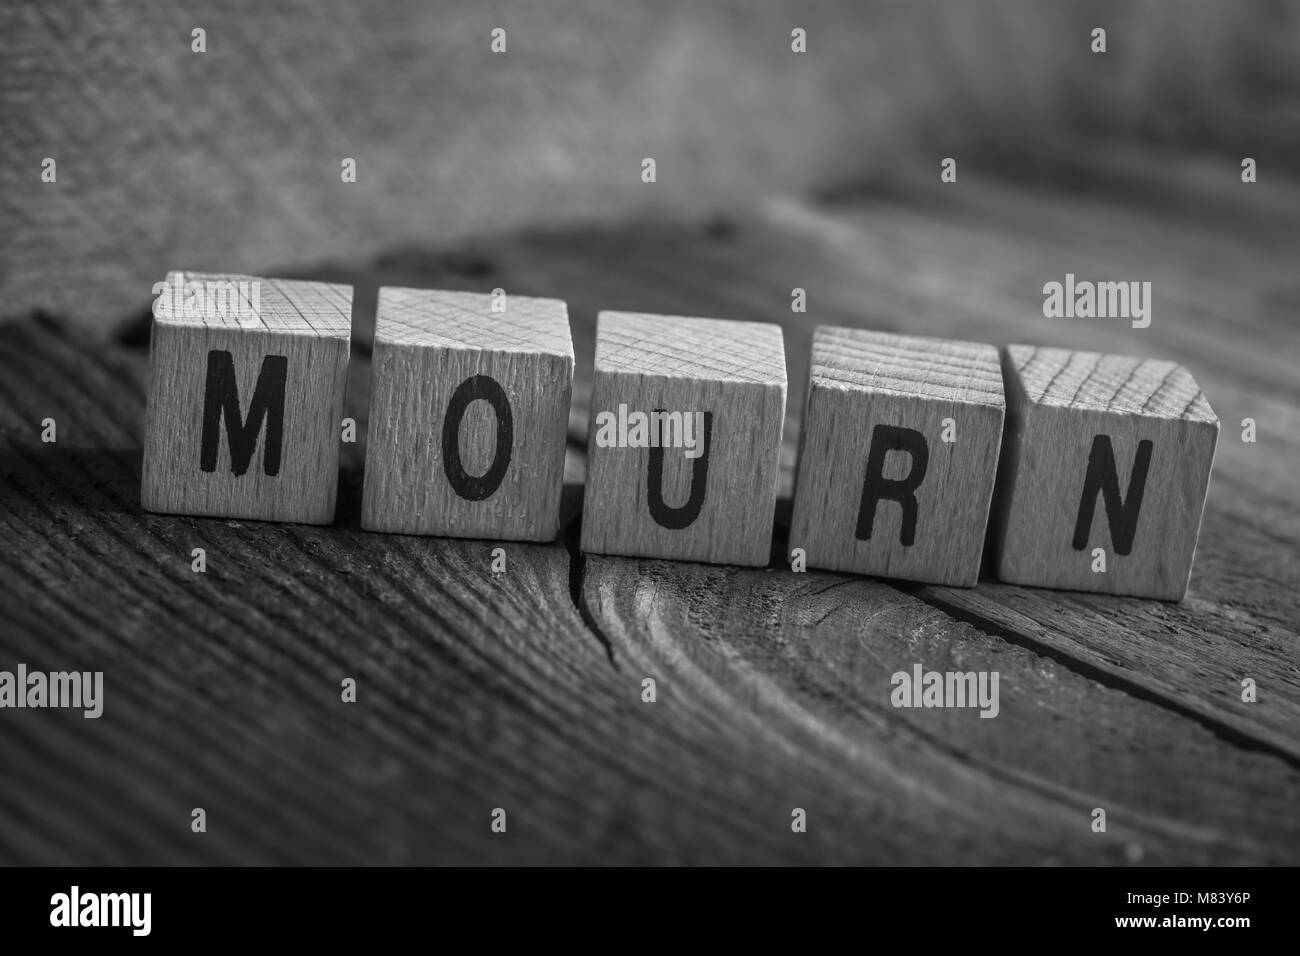 Macro Of The Word Mourn Formed By Wooden Blocks On A Wooden Floor - Stock Image